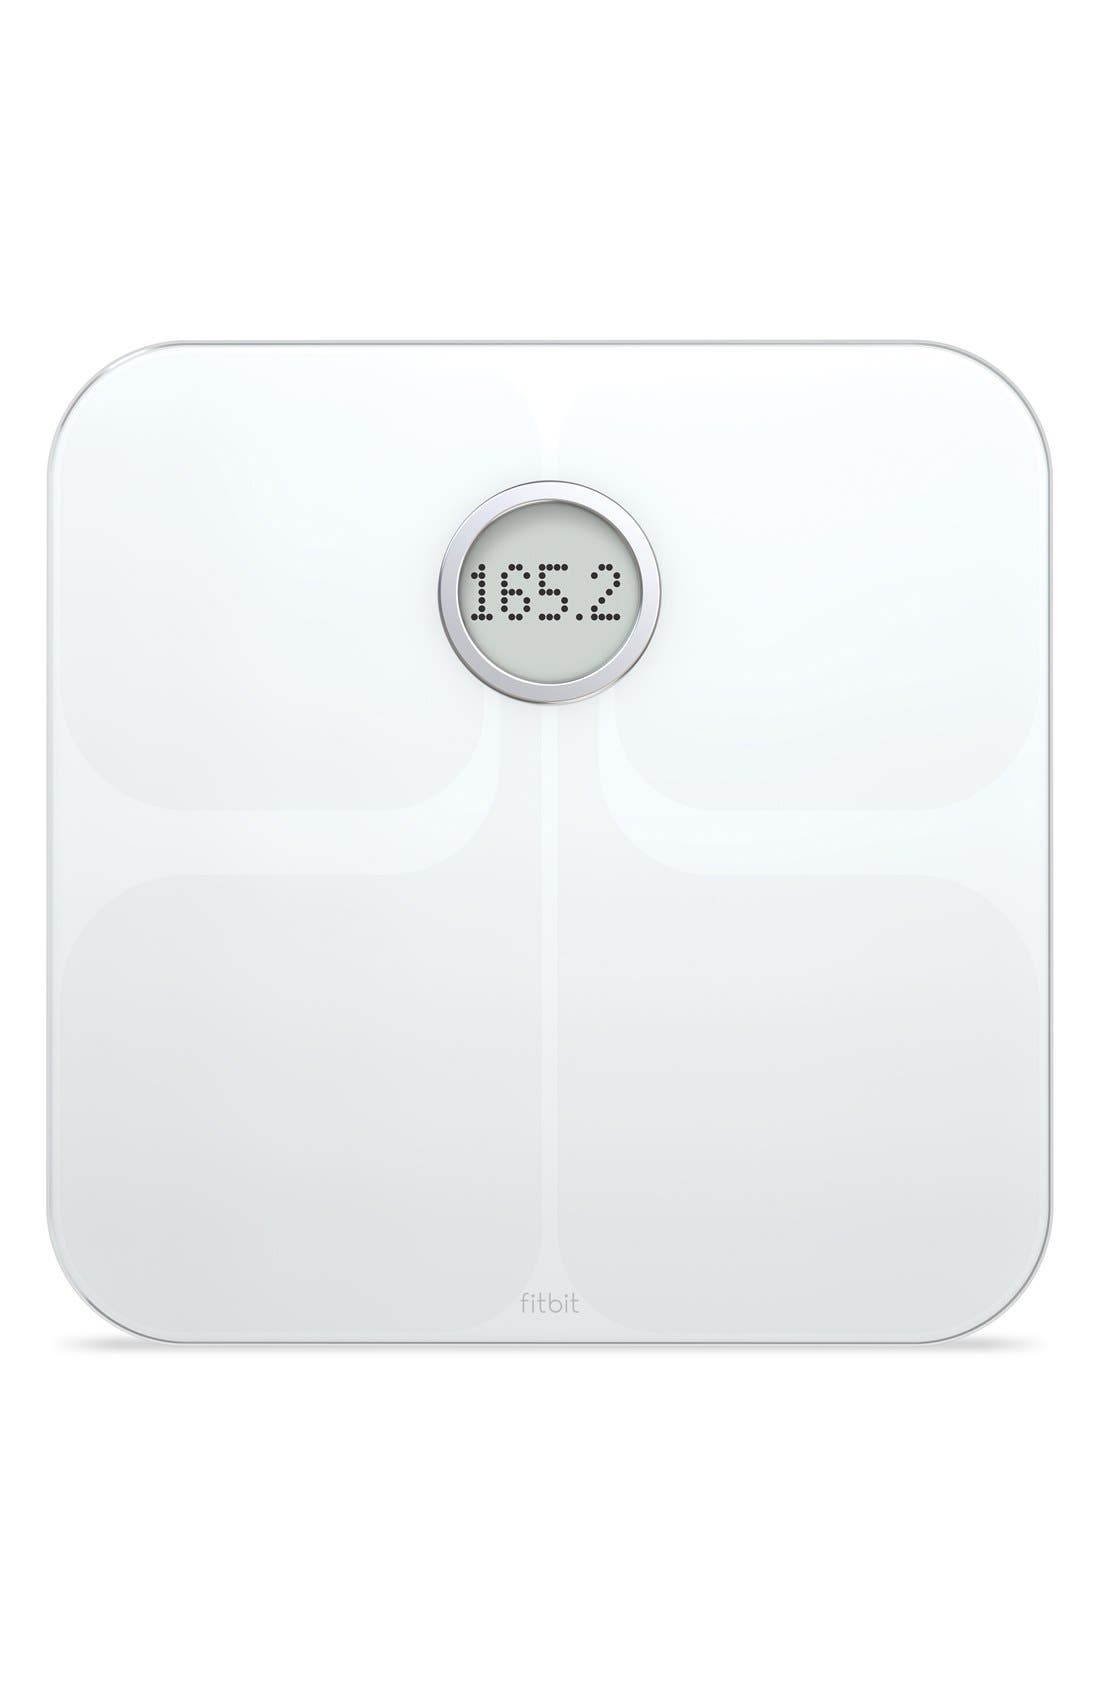 FITBIT 'Aria' Wireless Smart Scale